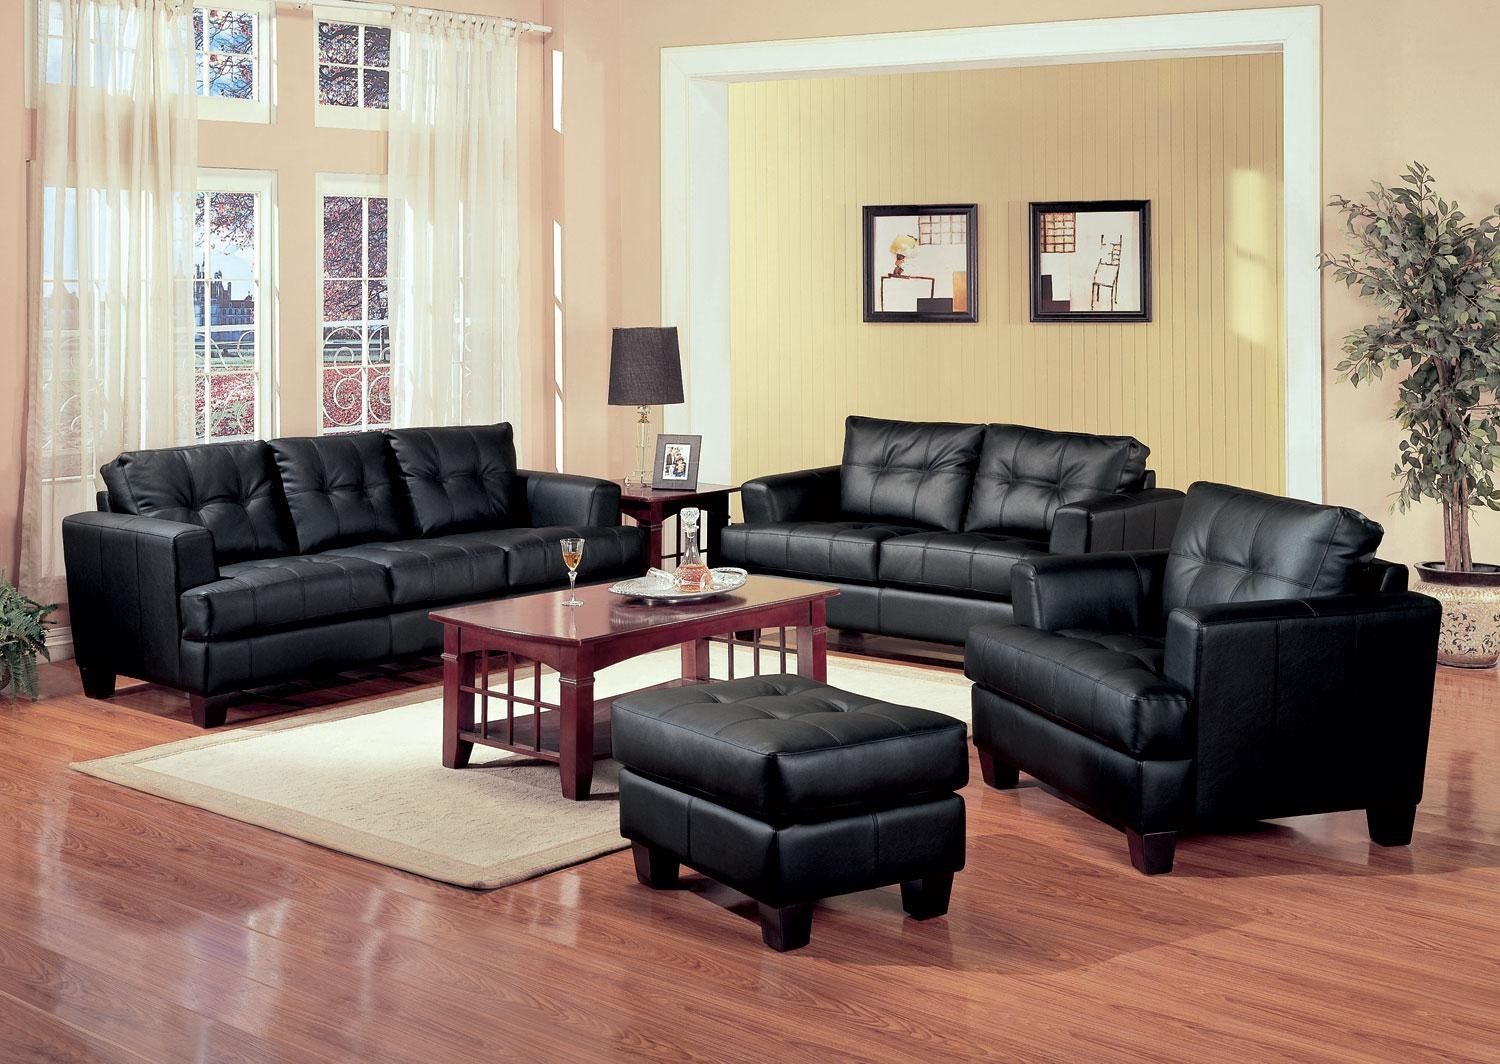 Samuel Black Leather Living Room Set 501681 From Coaster 501681 intended for 12 Awesome Tricks of How to Make Black Leather Living Room Set